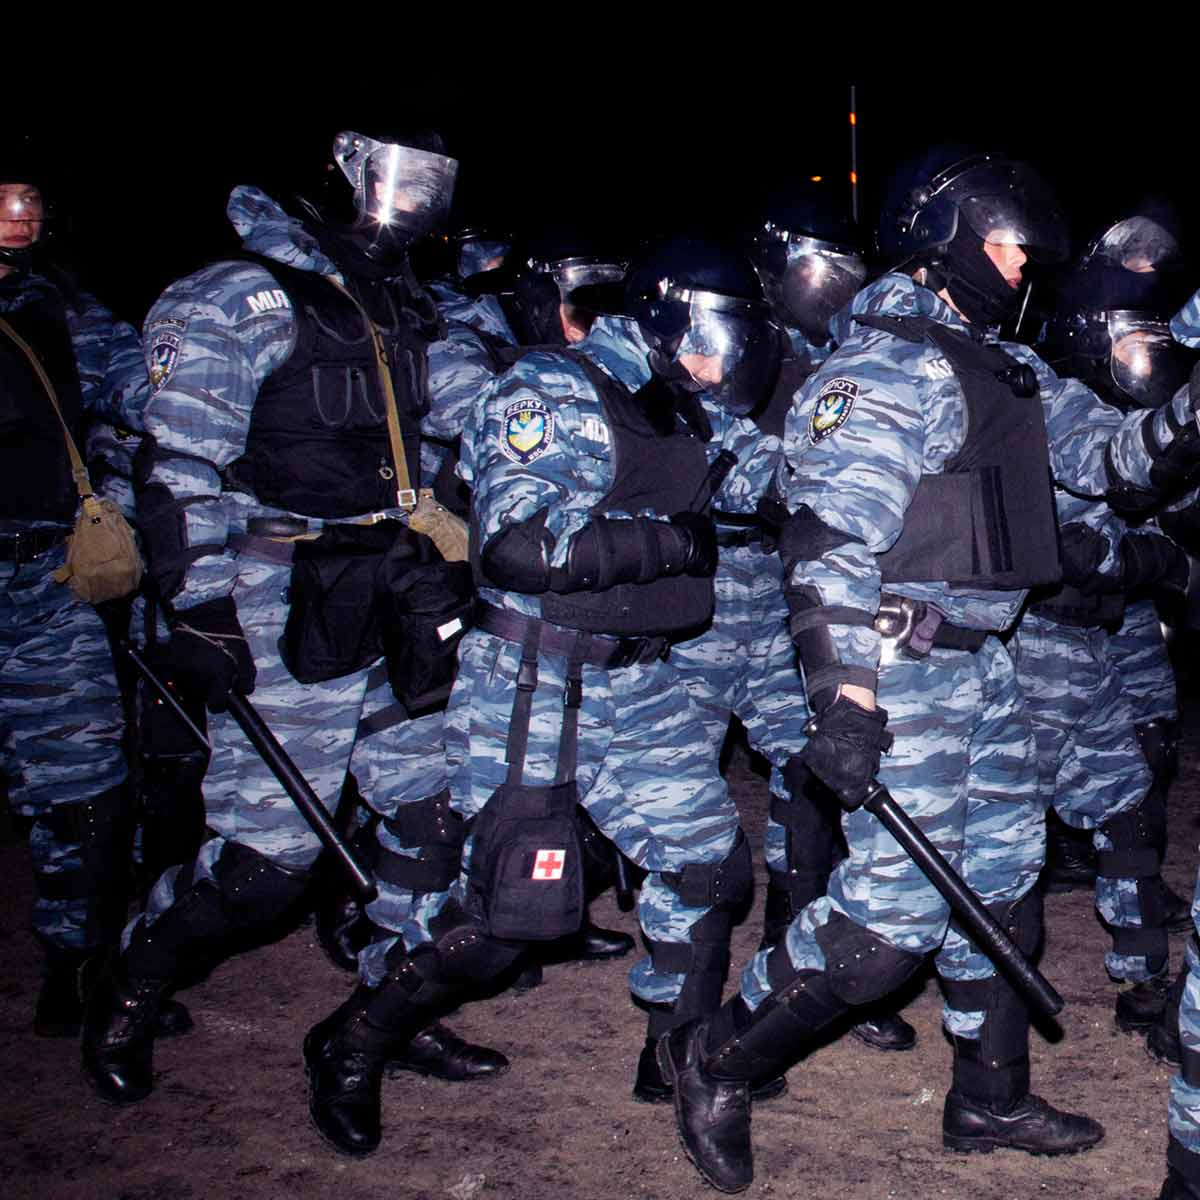 Civil Unrest in Kiev began on the night of 21 November 2013 with public protests demanding closer European integration.